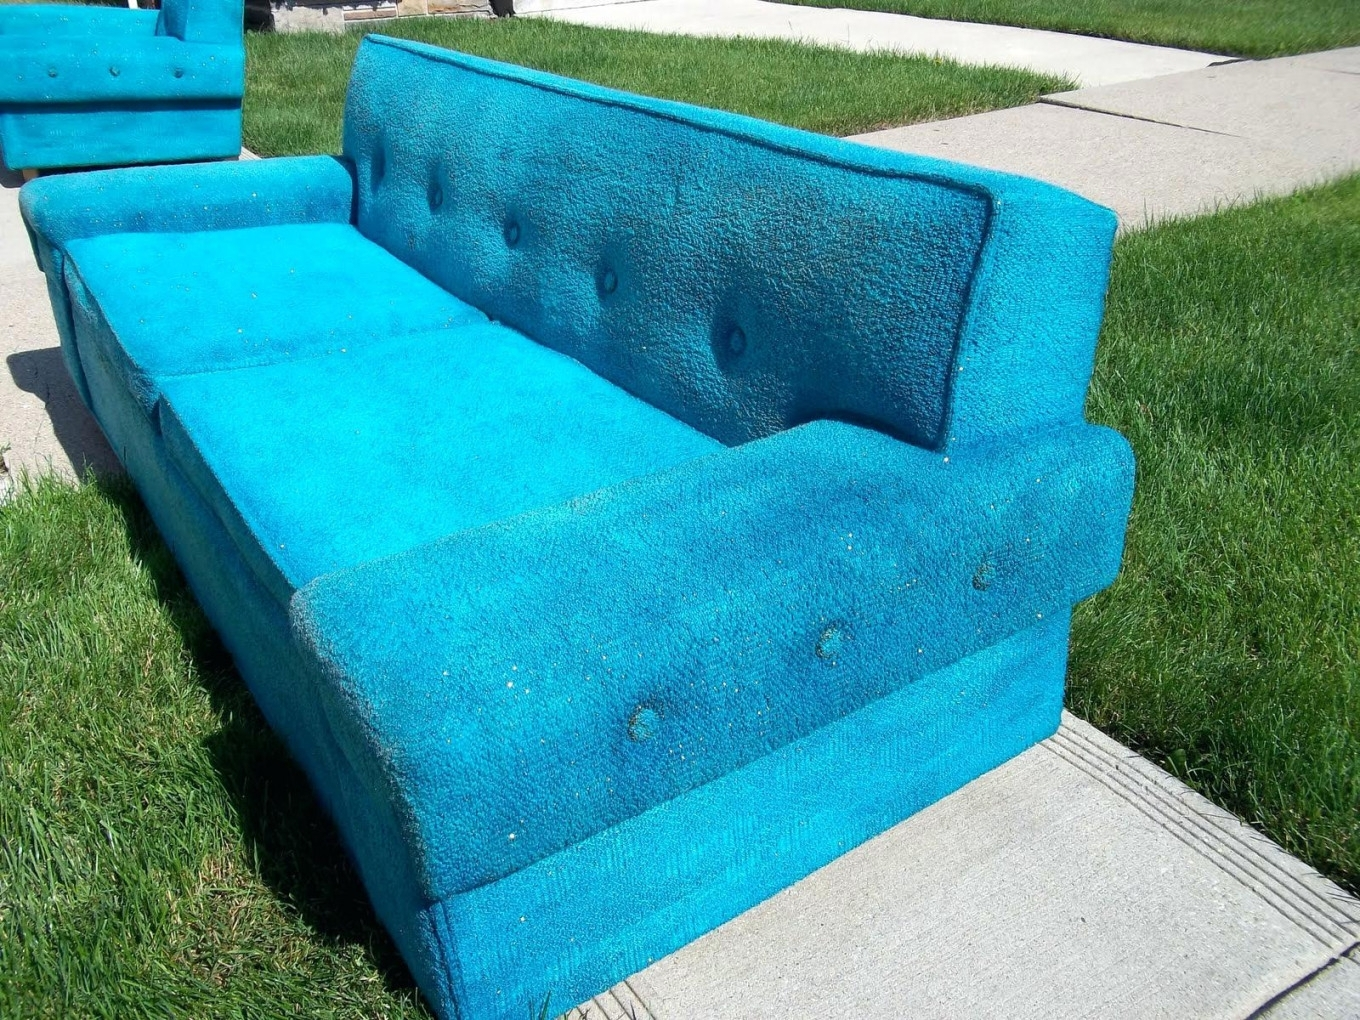 Most Up To Date Articles With Overstock Outdoor Chaise Lounge Cushions Tag Inside For Overstock Chaise Lounges (View 7 of 15)